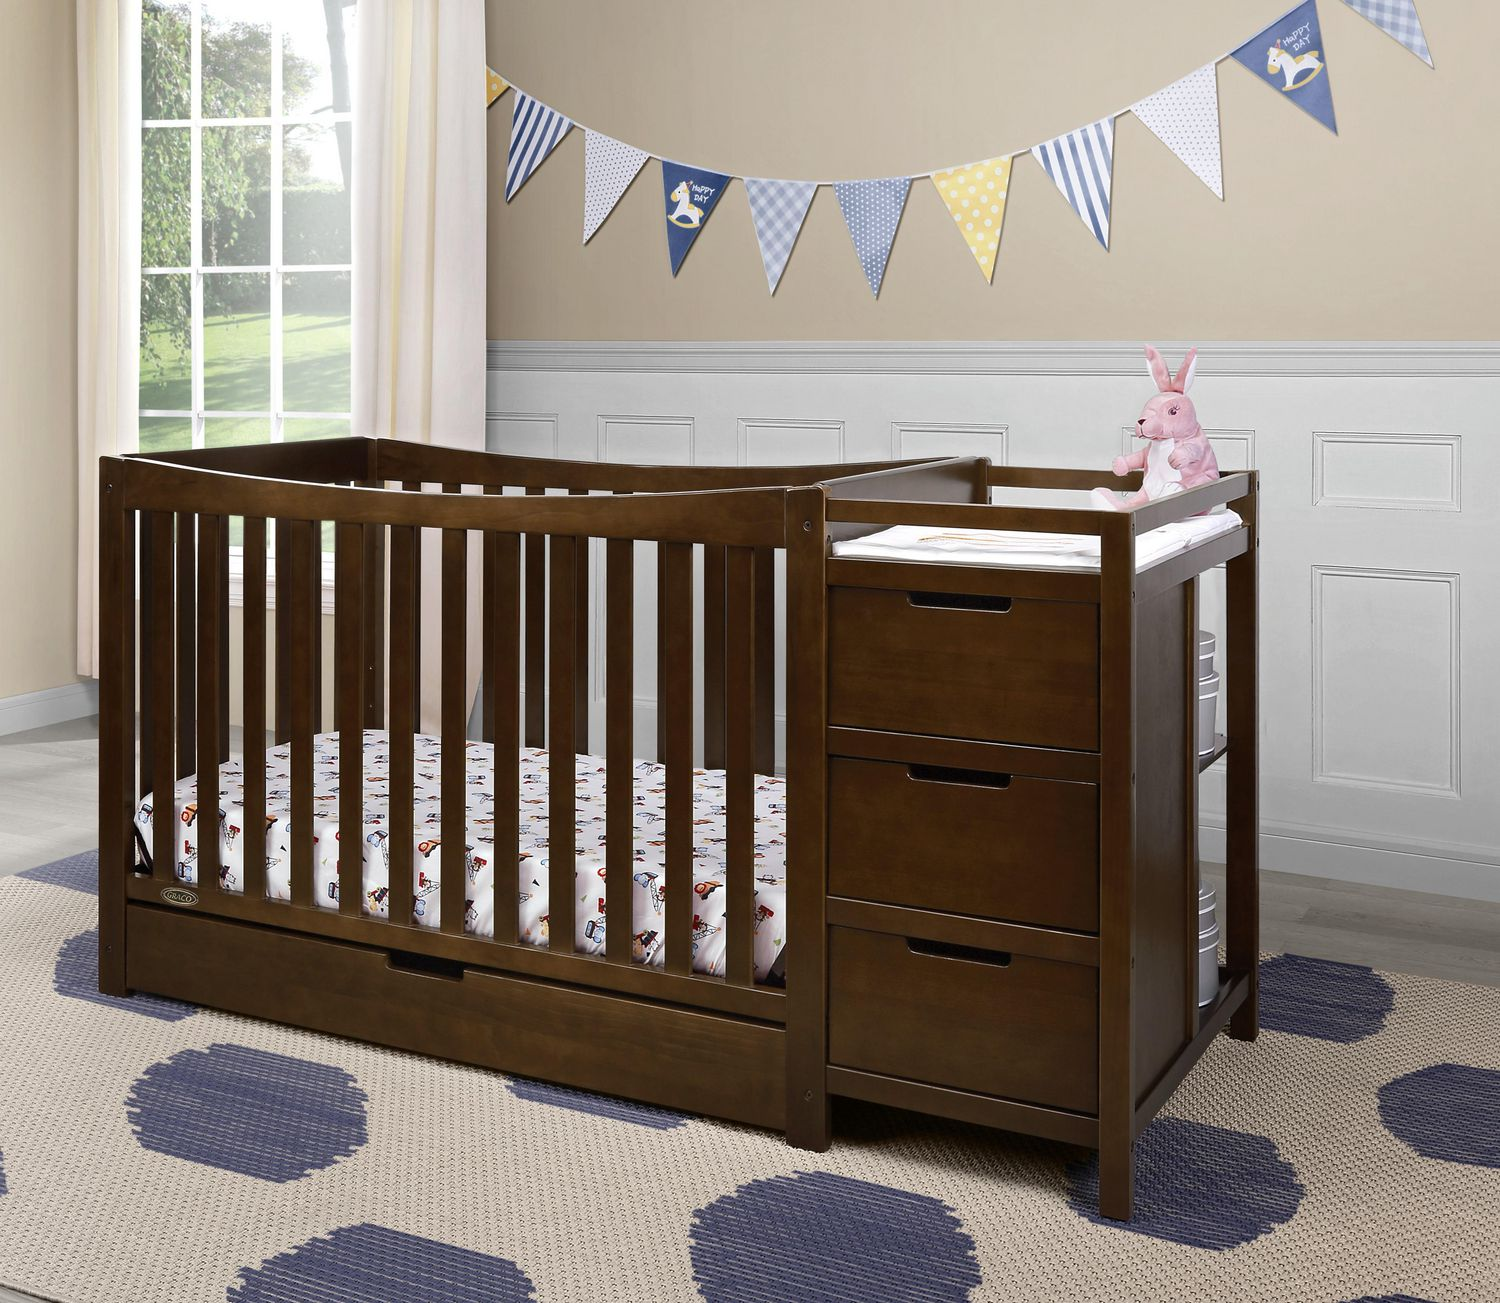 crib affc camden dressing child cribs craft table arched changing all and products nurzery com